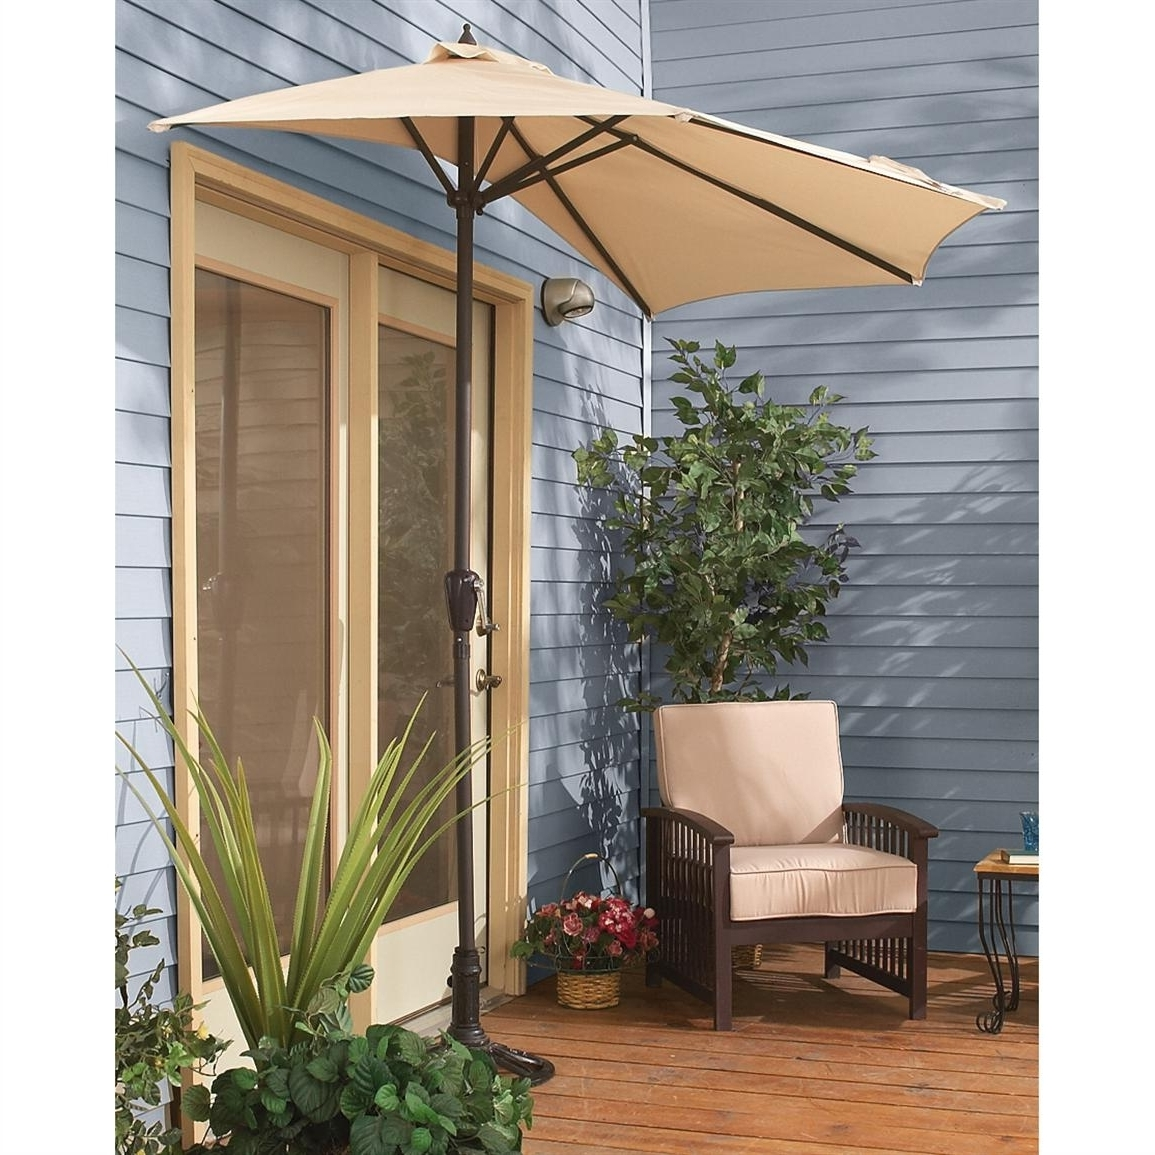 Half Patio Umbrella Canada Half Patio Umbrella Patio Umbrellas At With Newest Half Patio Umbrellas (Gallery 2 of 20)